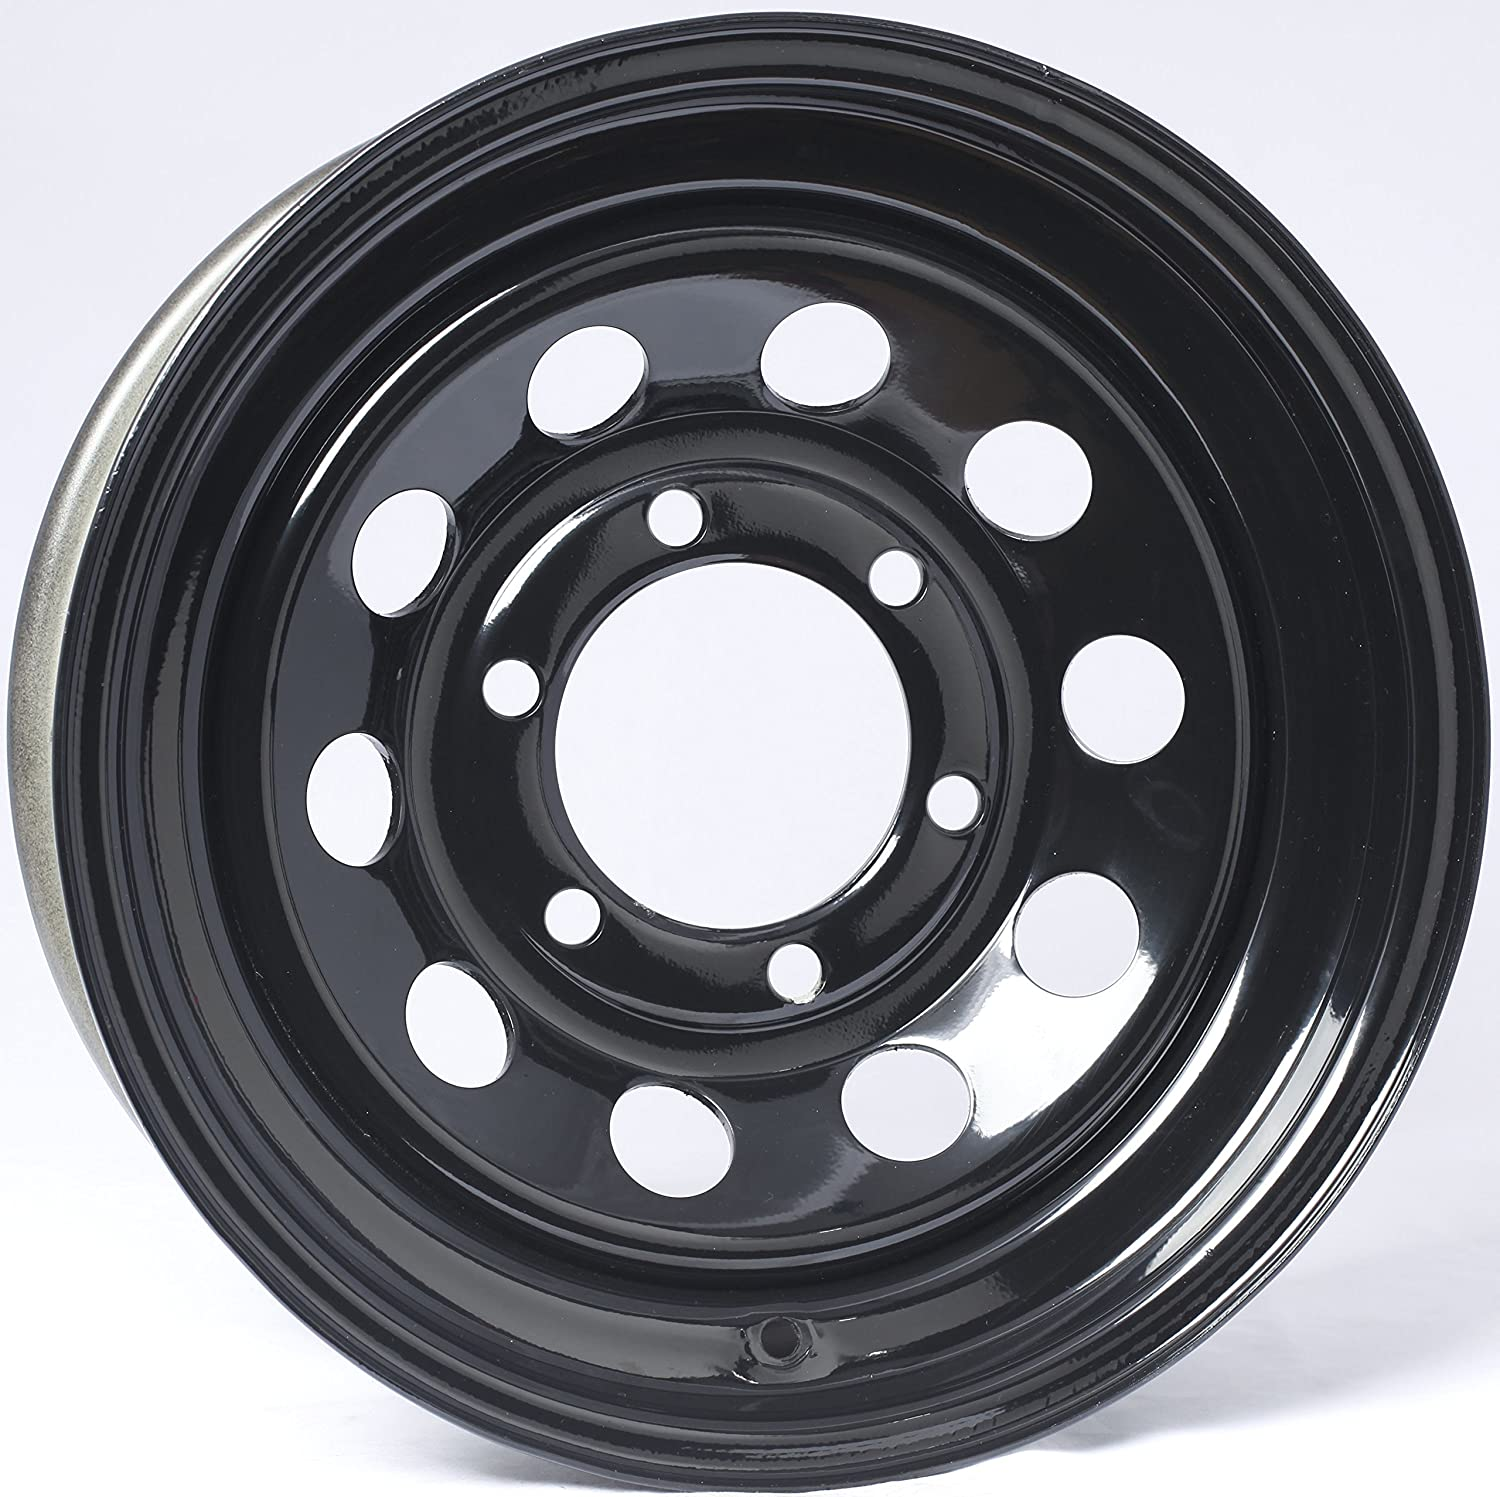 eCustomRim Trailer Rim Wheel 15X6 Black Modular 2830 Lb. 4.27 Center Bore 6 Lug